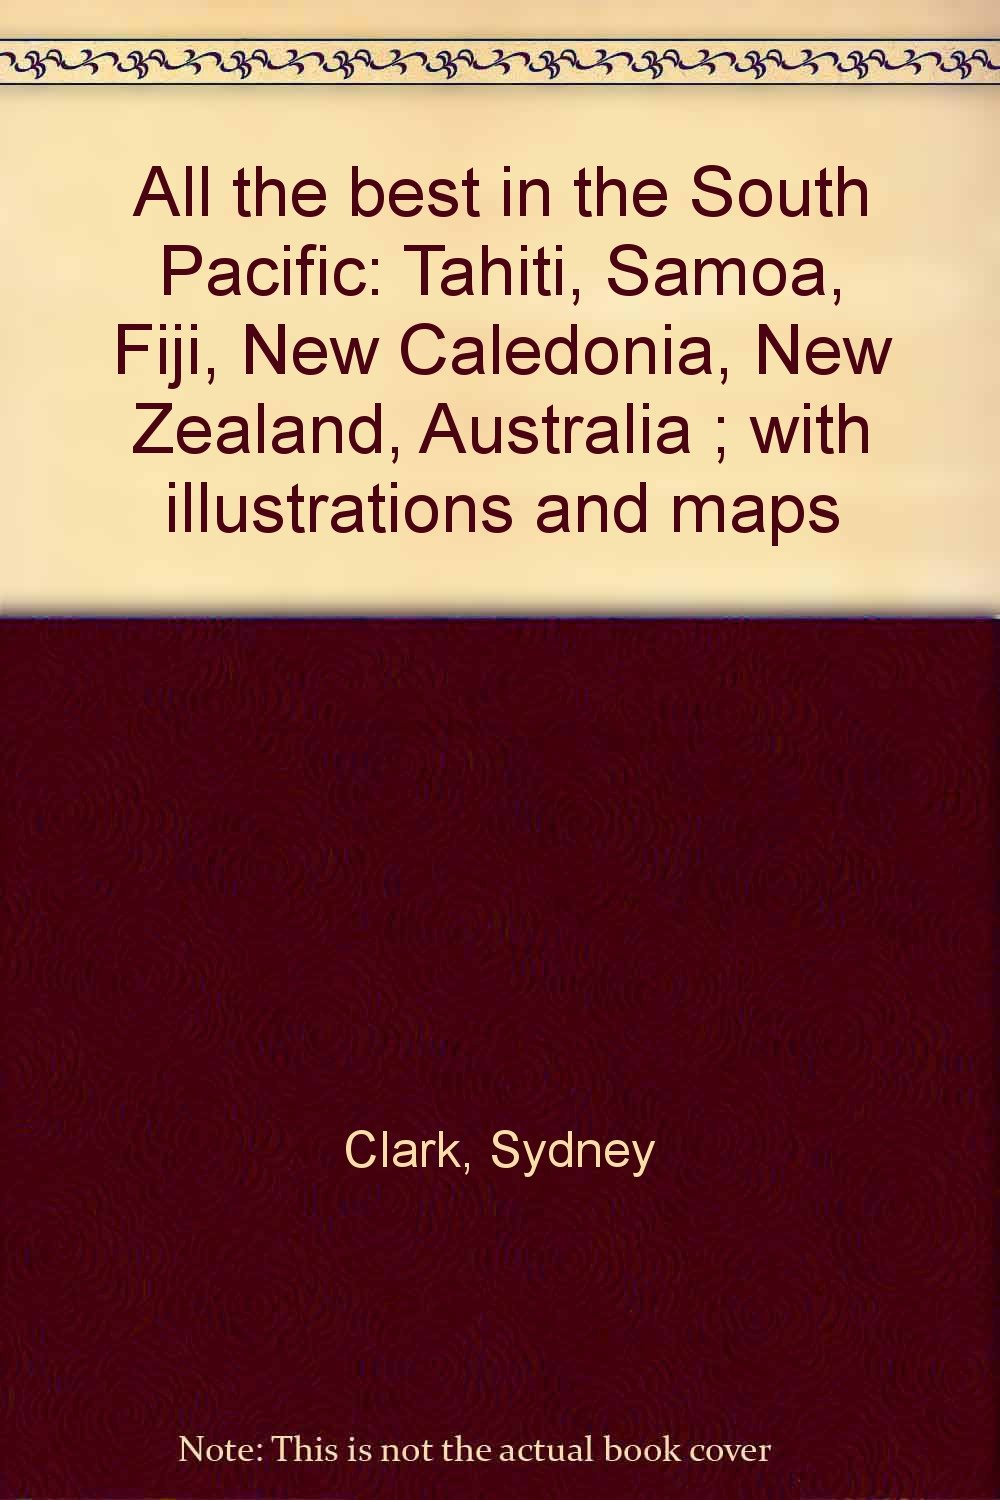 All the best in the South Pacific: Tahiti, Samoa, Fiji, New Caledonia, New Zealand, Australia ; with illustrations and maps